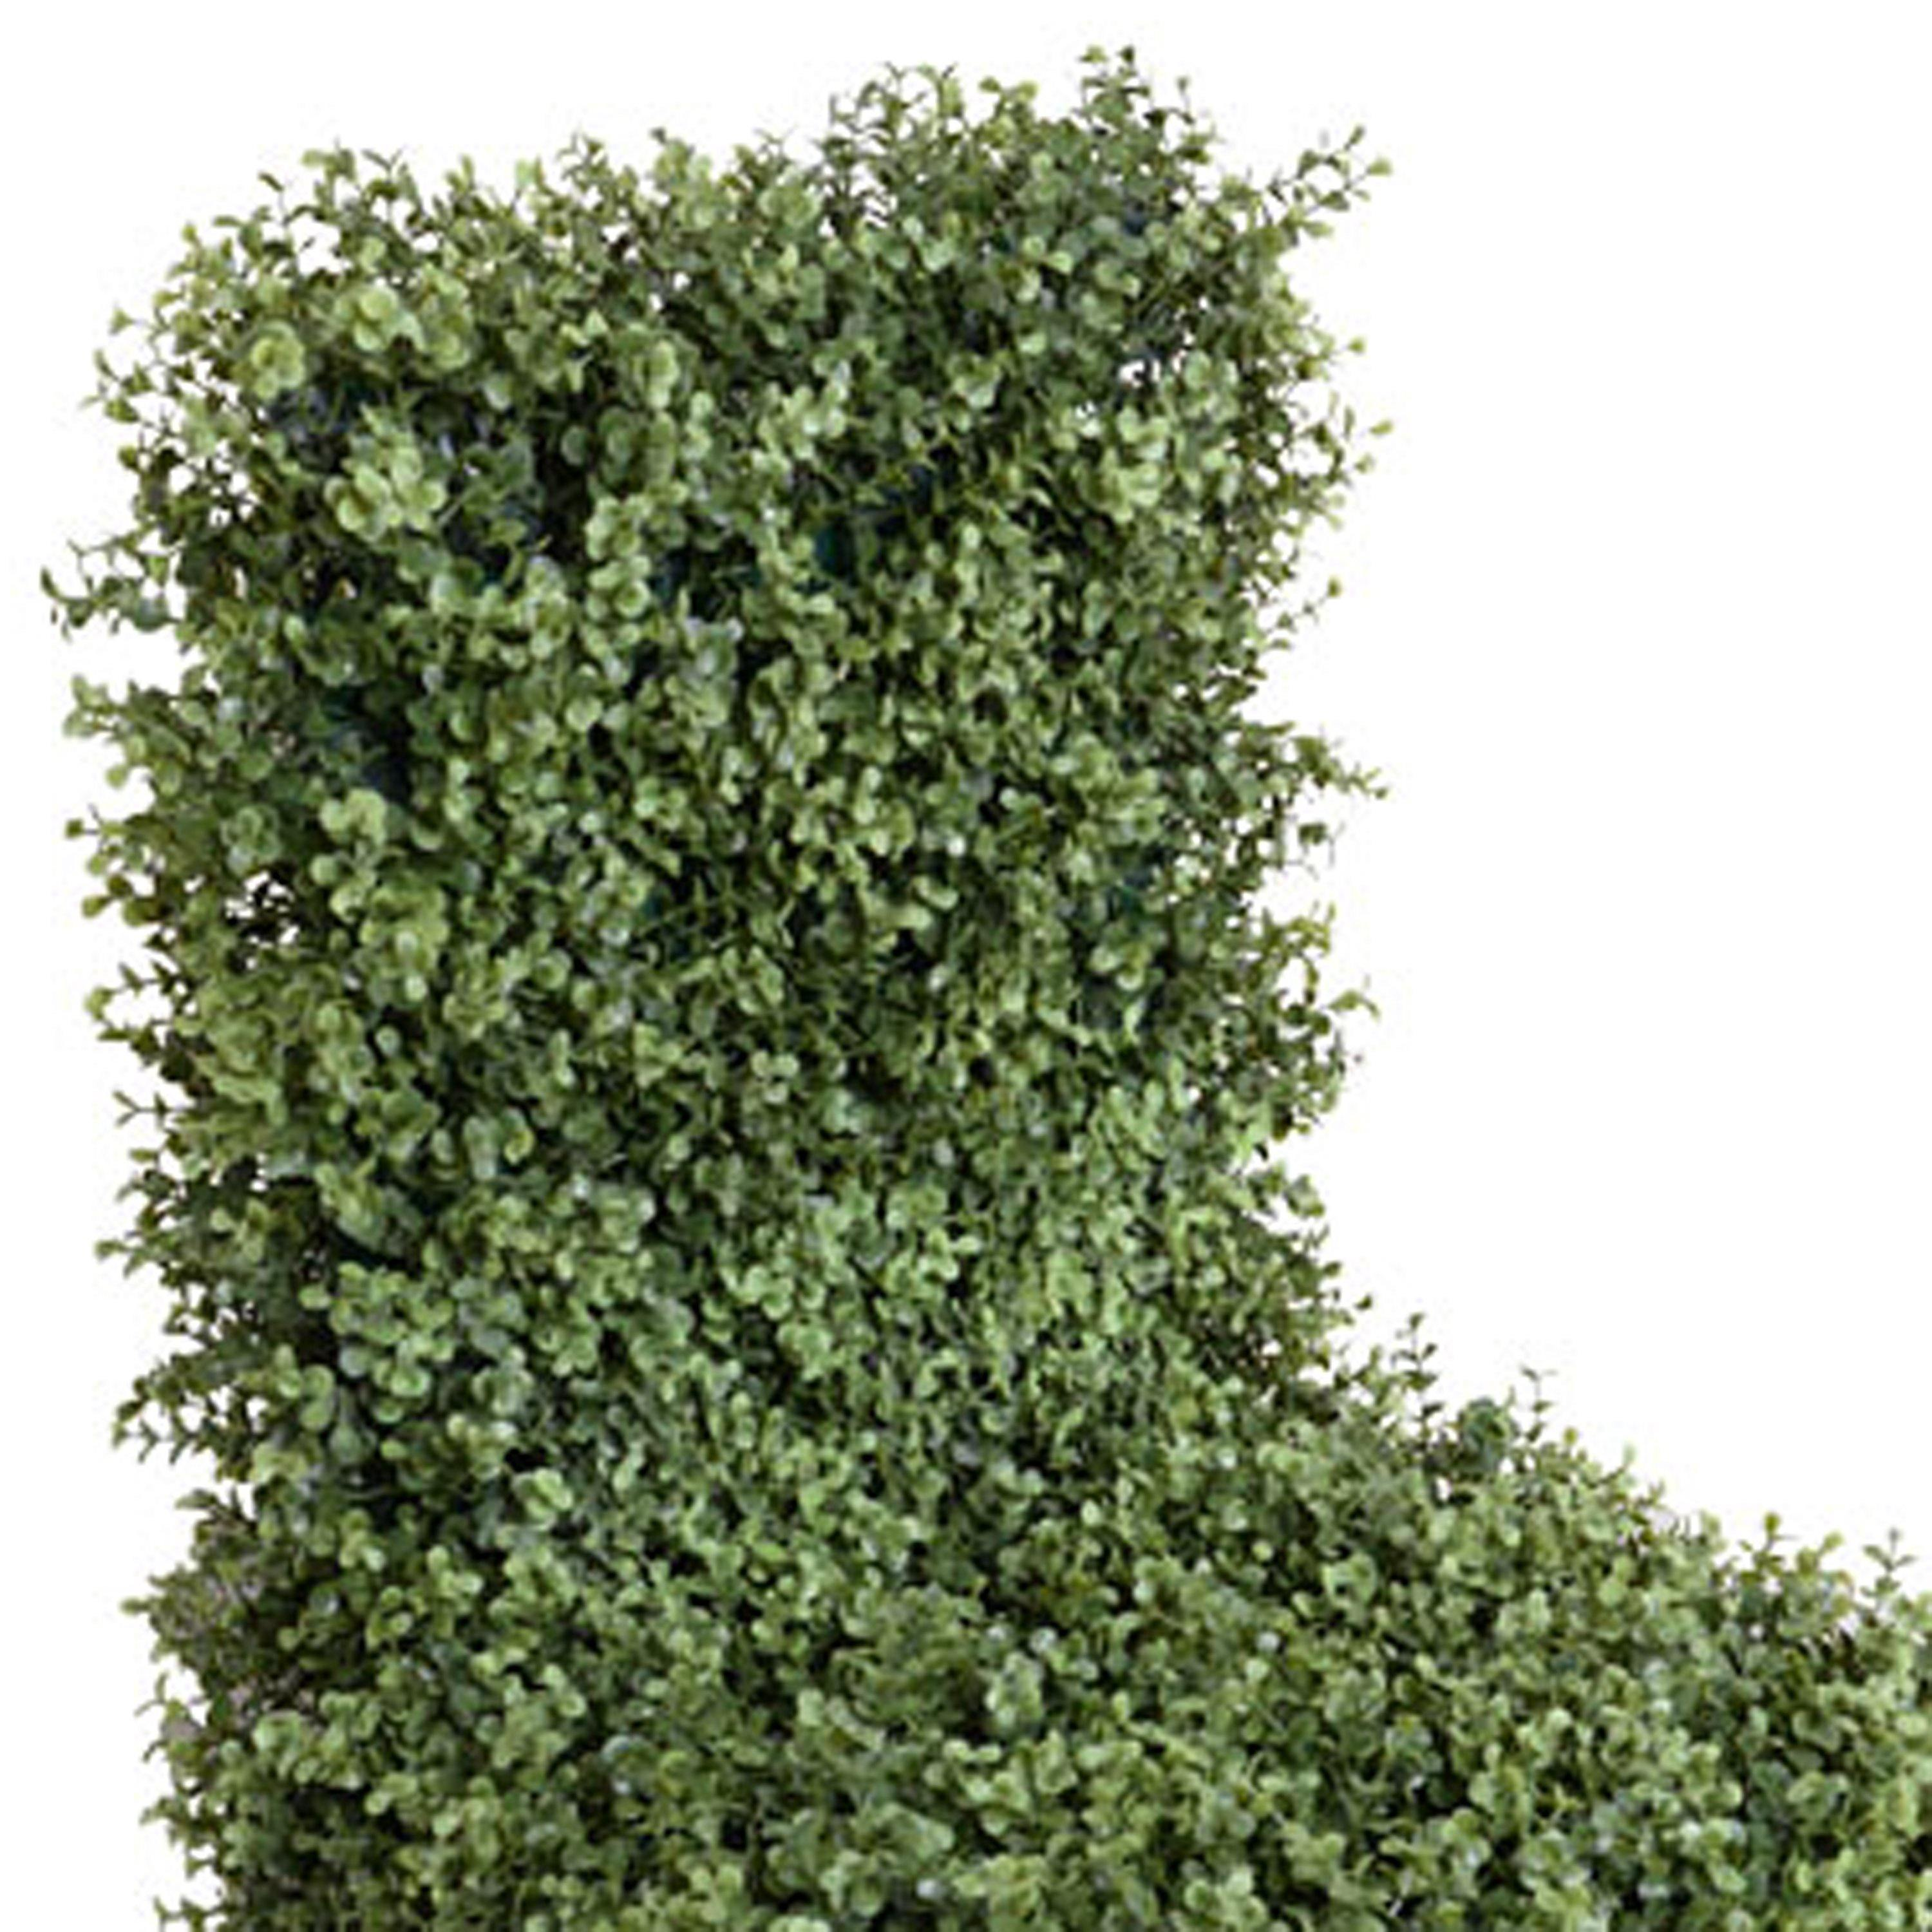 Garden Chair with Enduraleaf Boxwood - New Growth Designs